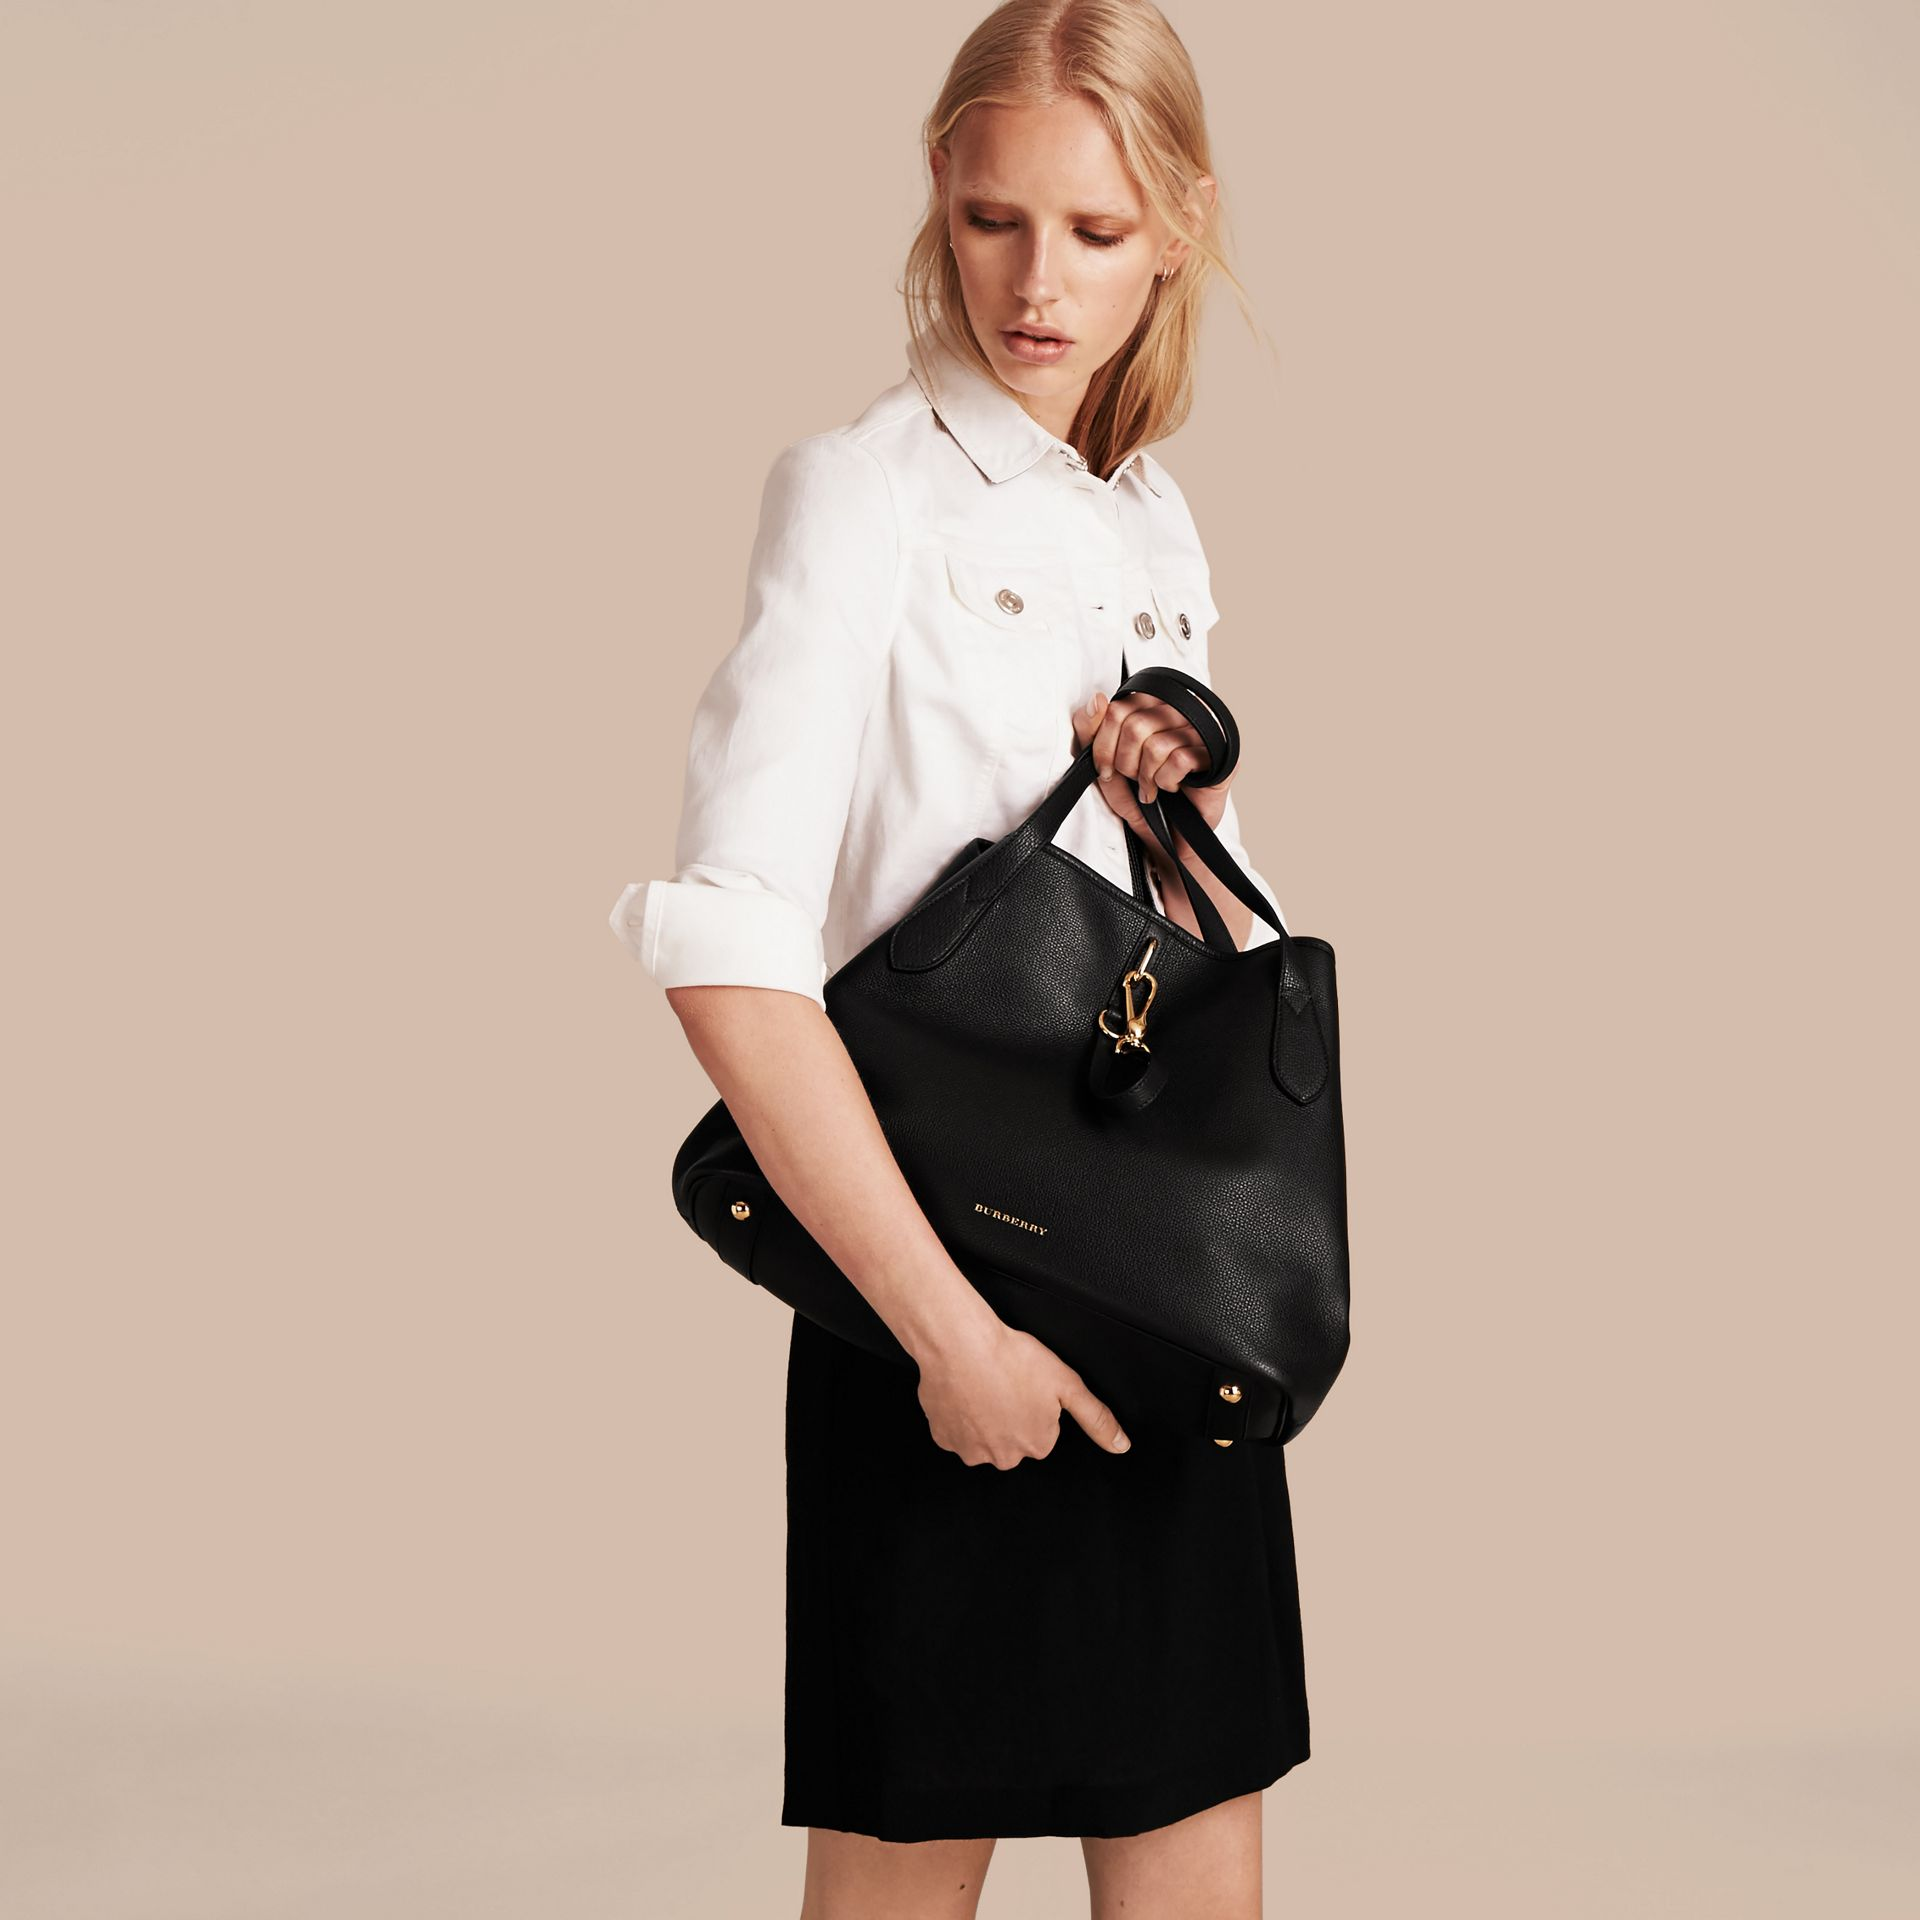 Medium Grainy Leather Tote Bag in Black - Women | Burberry - gallery image 3